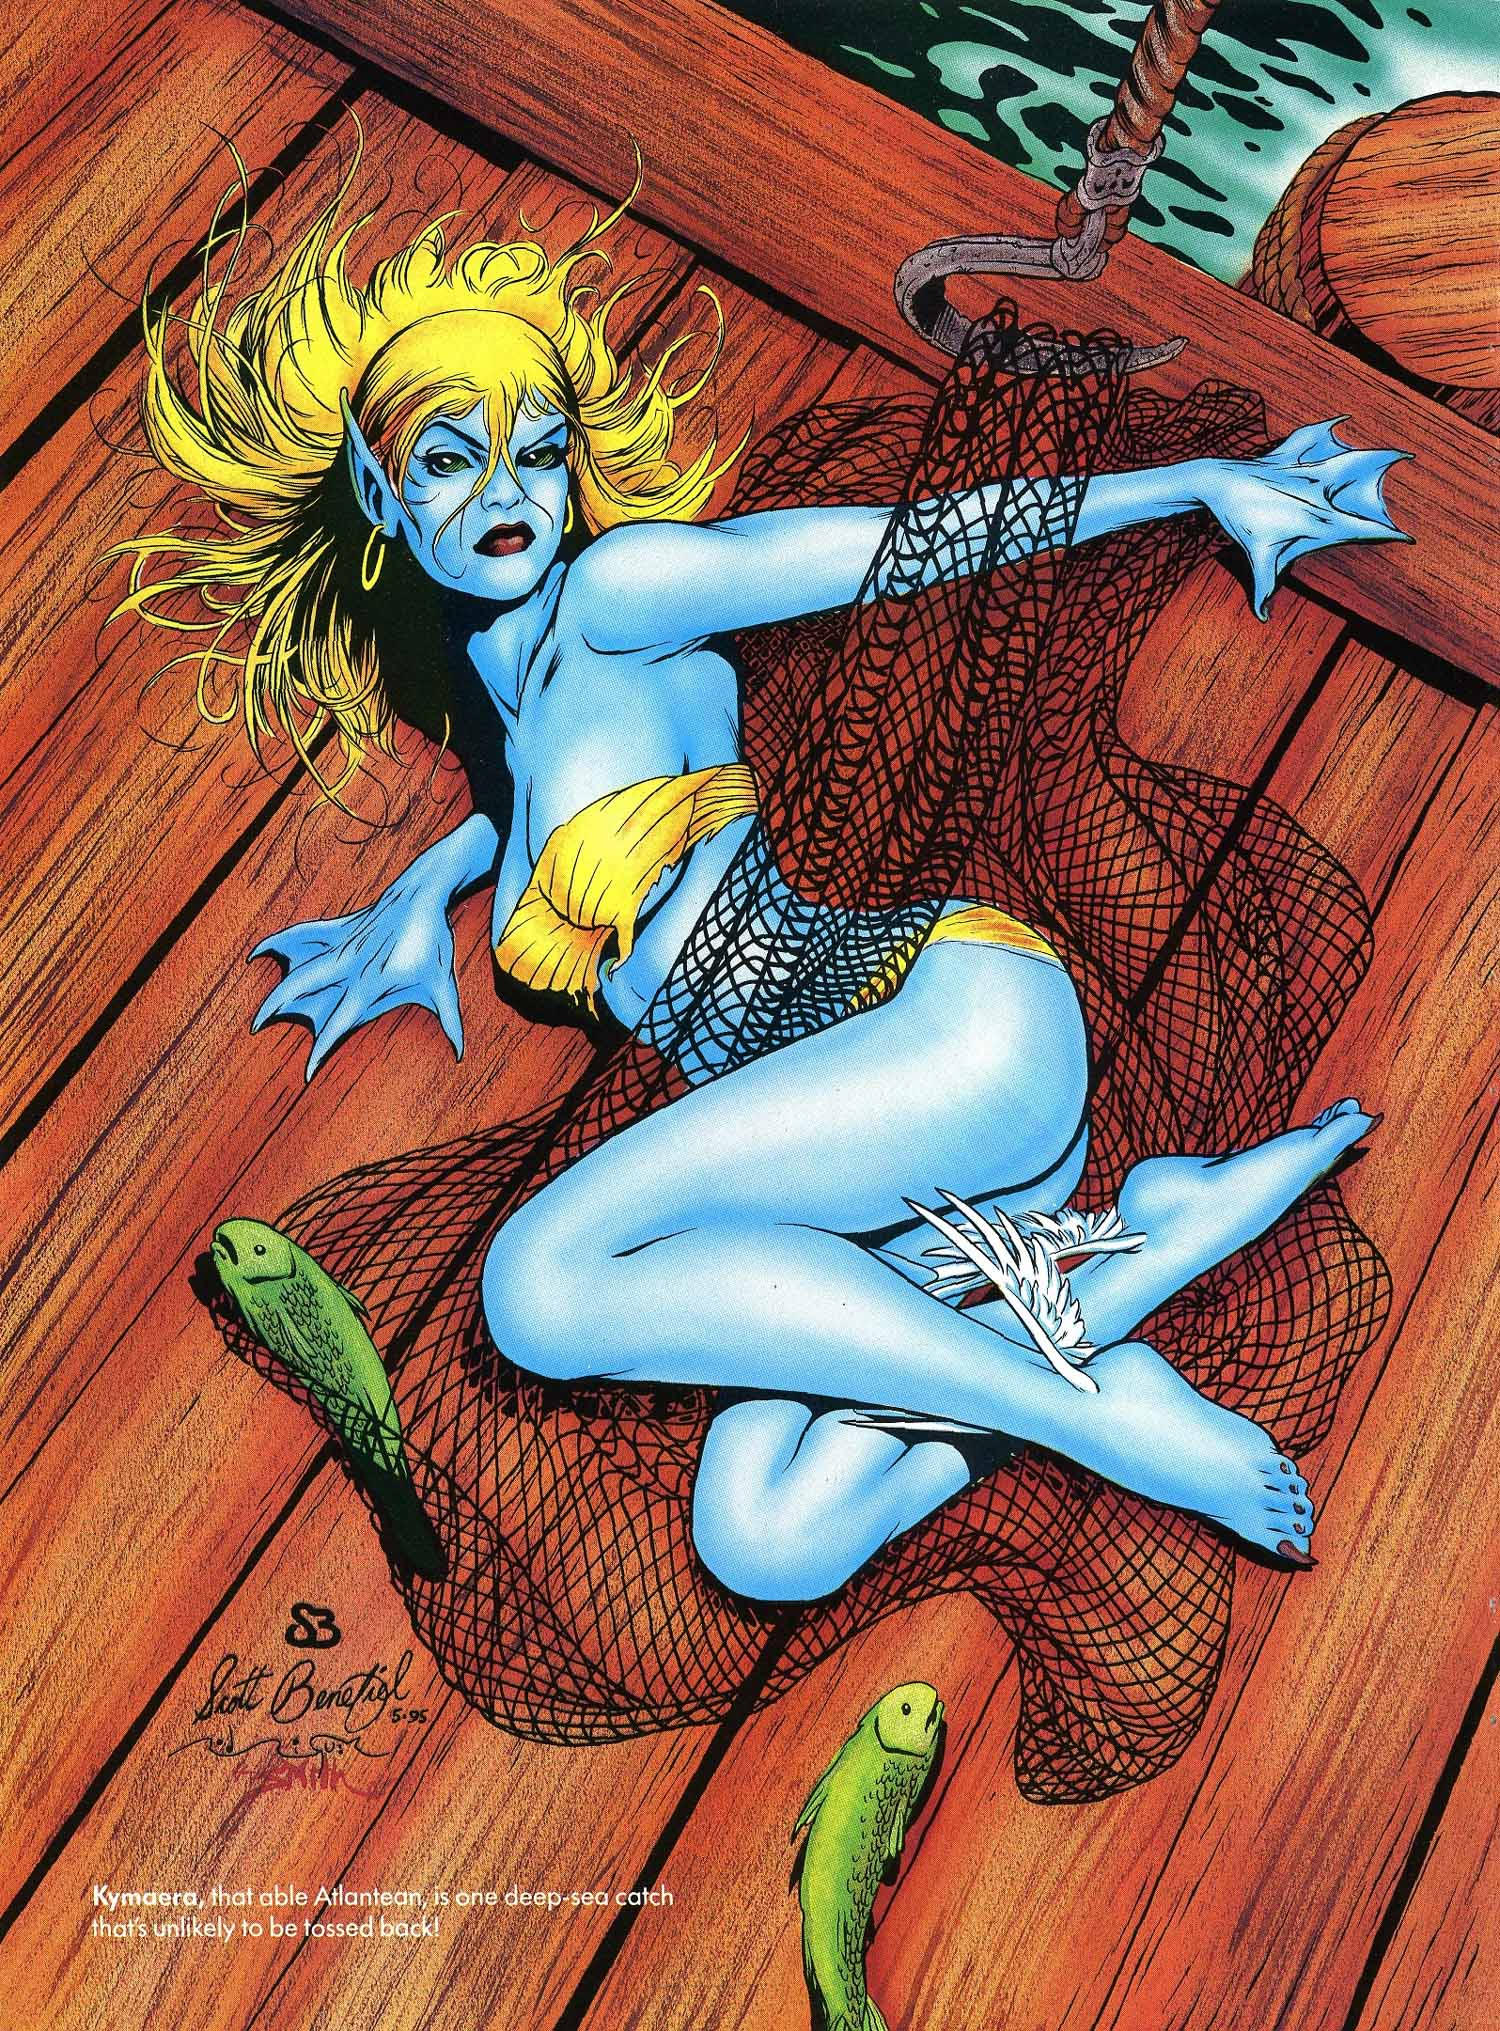 Kymaera_marvel_swimsuit_4_46.jpg